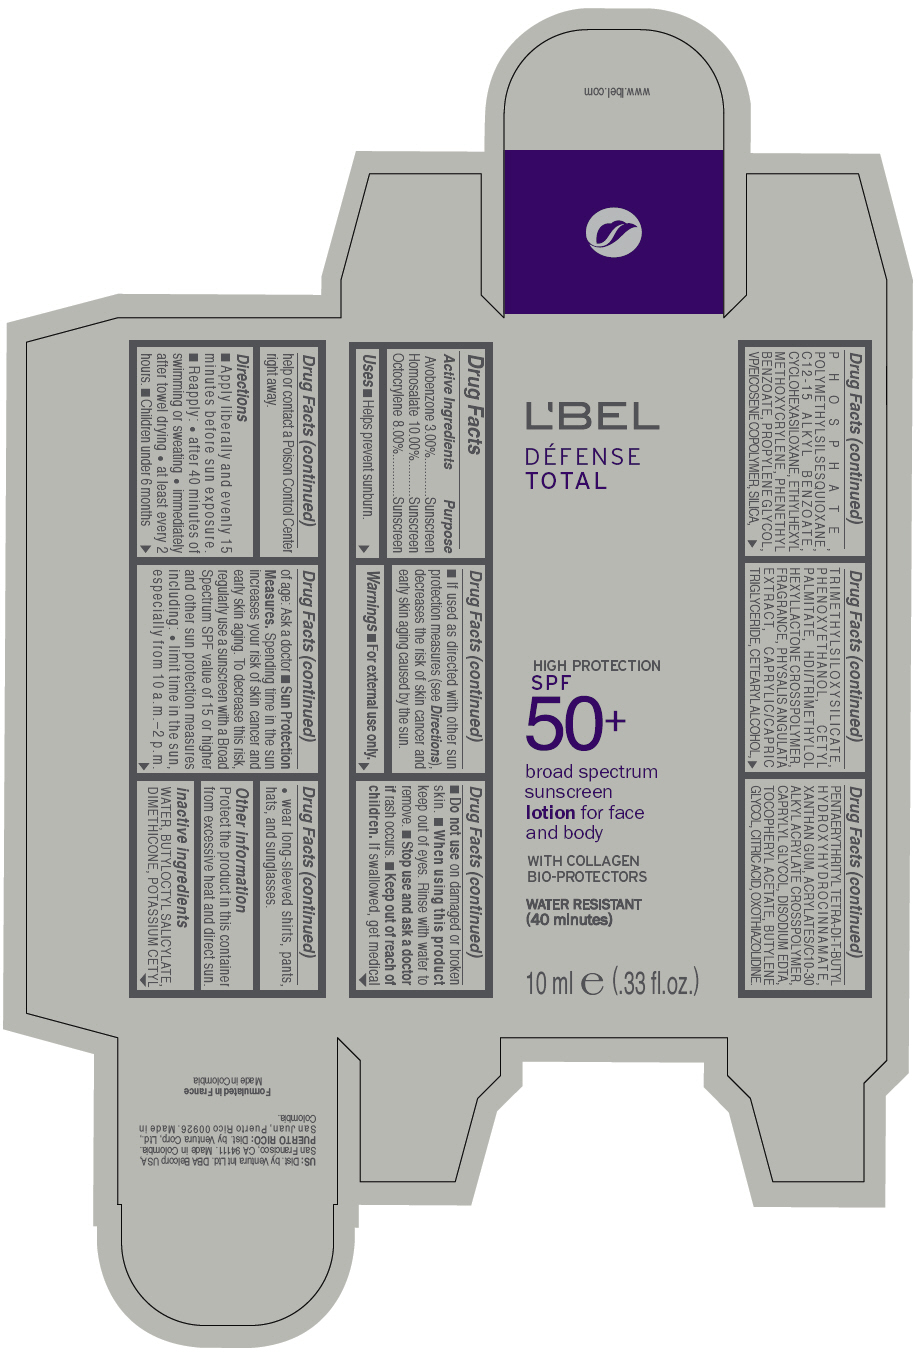 Lbel Defense Total Broad Spectrum Spf 50 Plus Sunscreen For Face And Body (Avobenzone, Homosalate, And Octocrylene) Lotion [Ventura International Ltd]